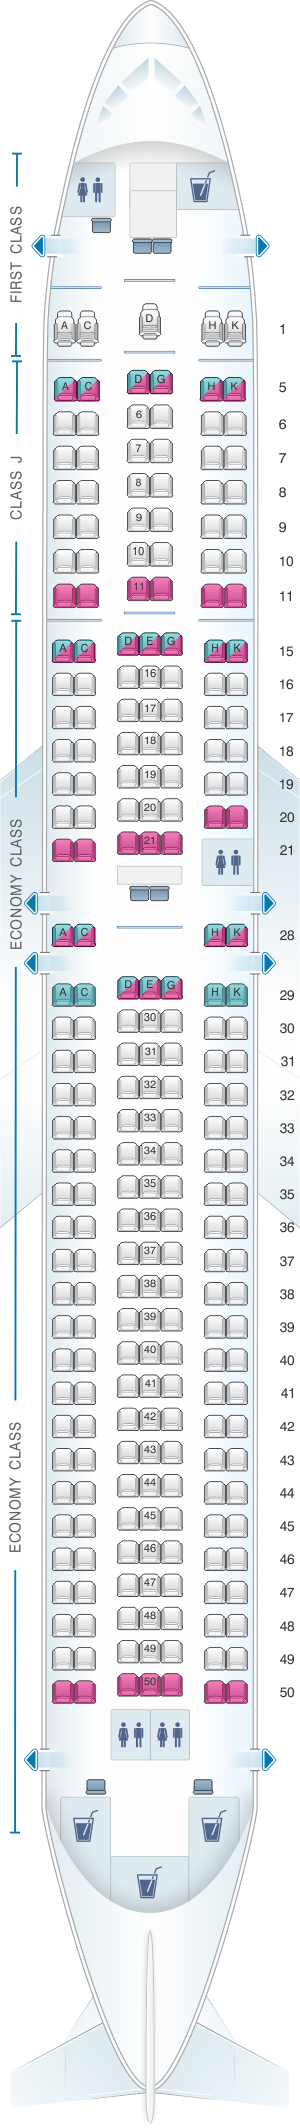 Seat map for Japan Airlines (JAL) Boeing B767 300ER A25